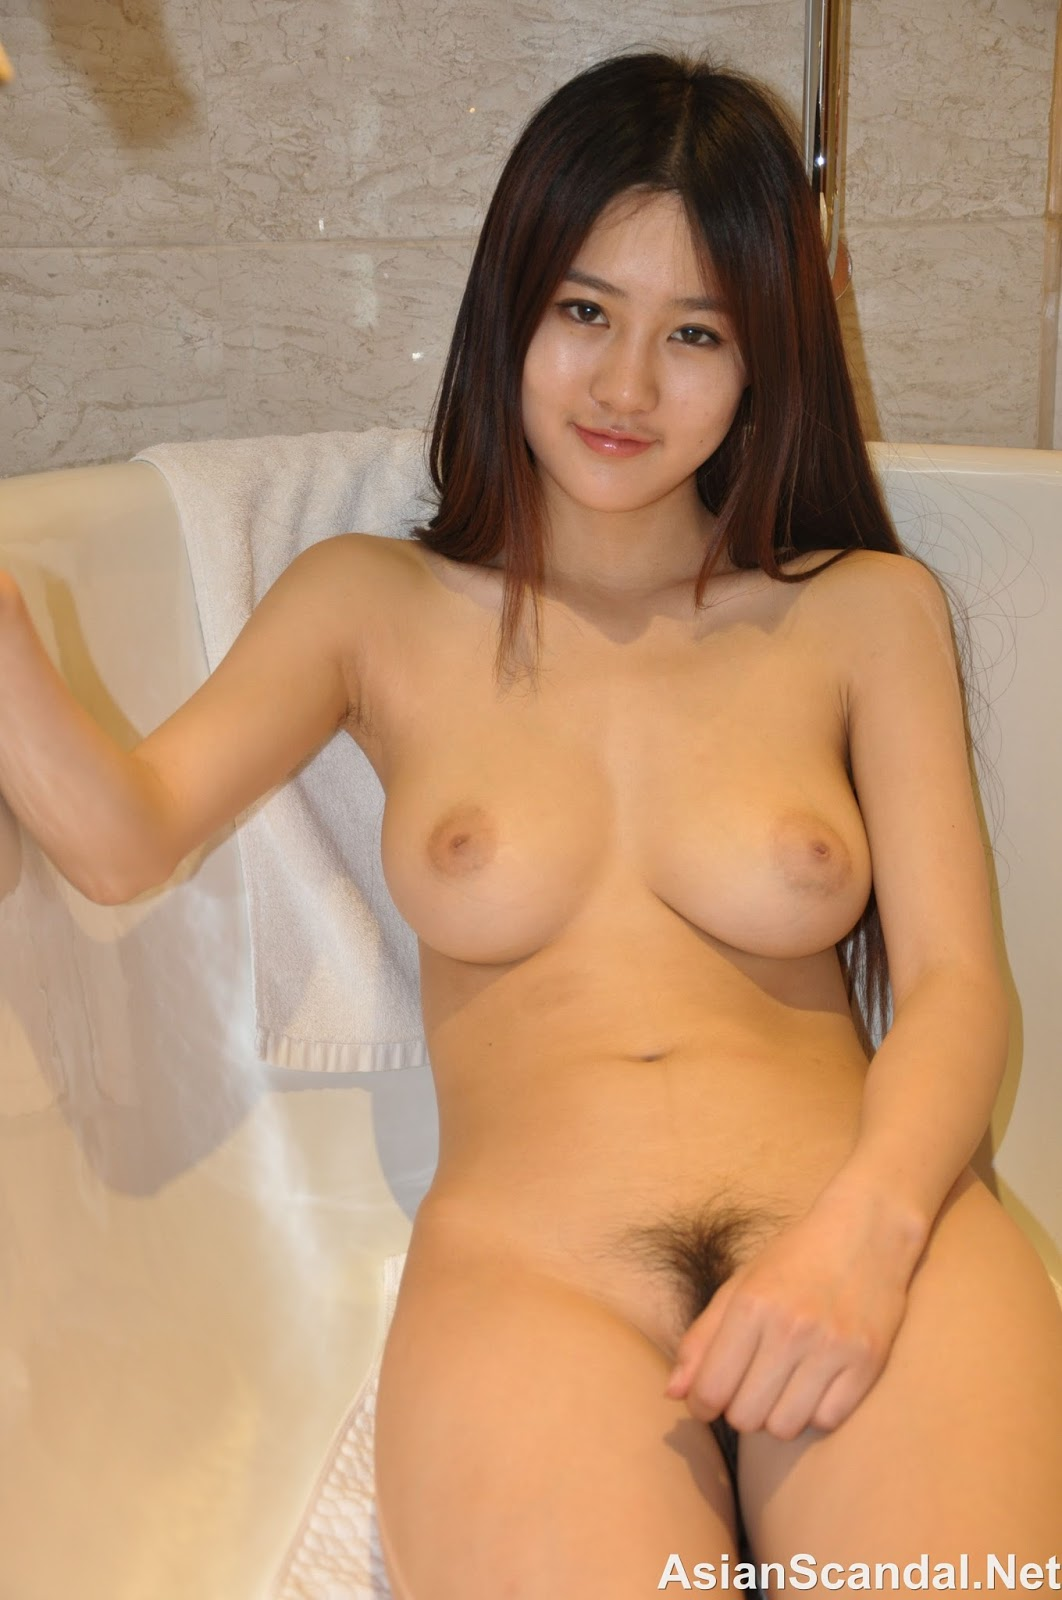 South korean girl porn